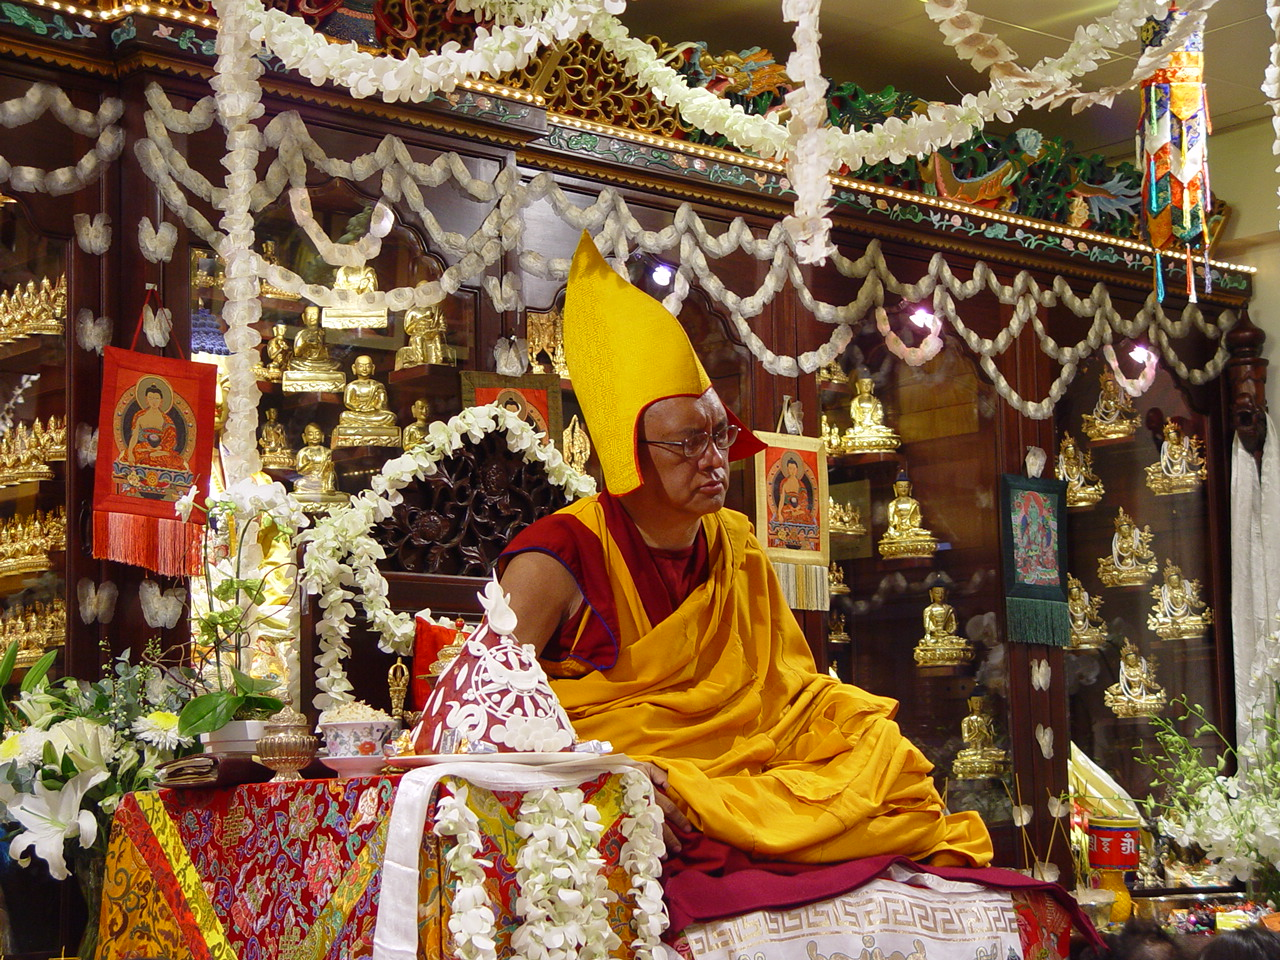 Long life puja offered in Hong Kong 2004.